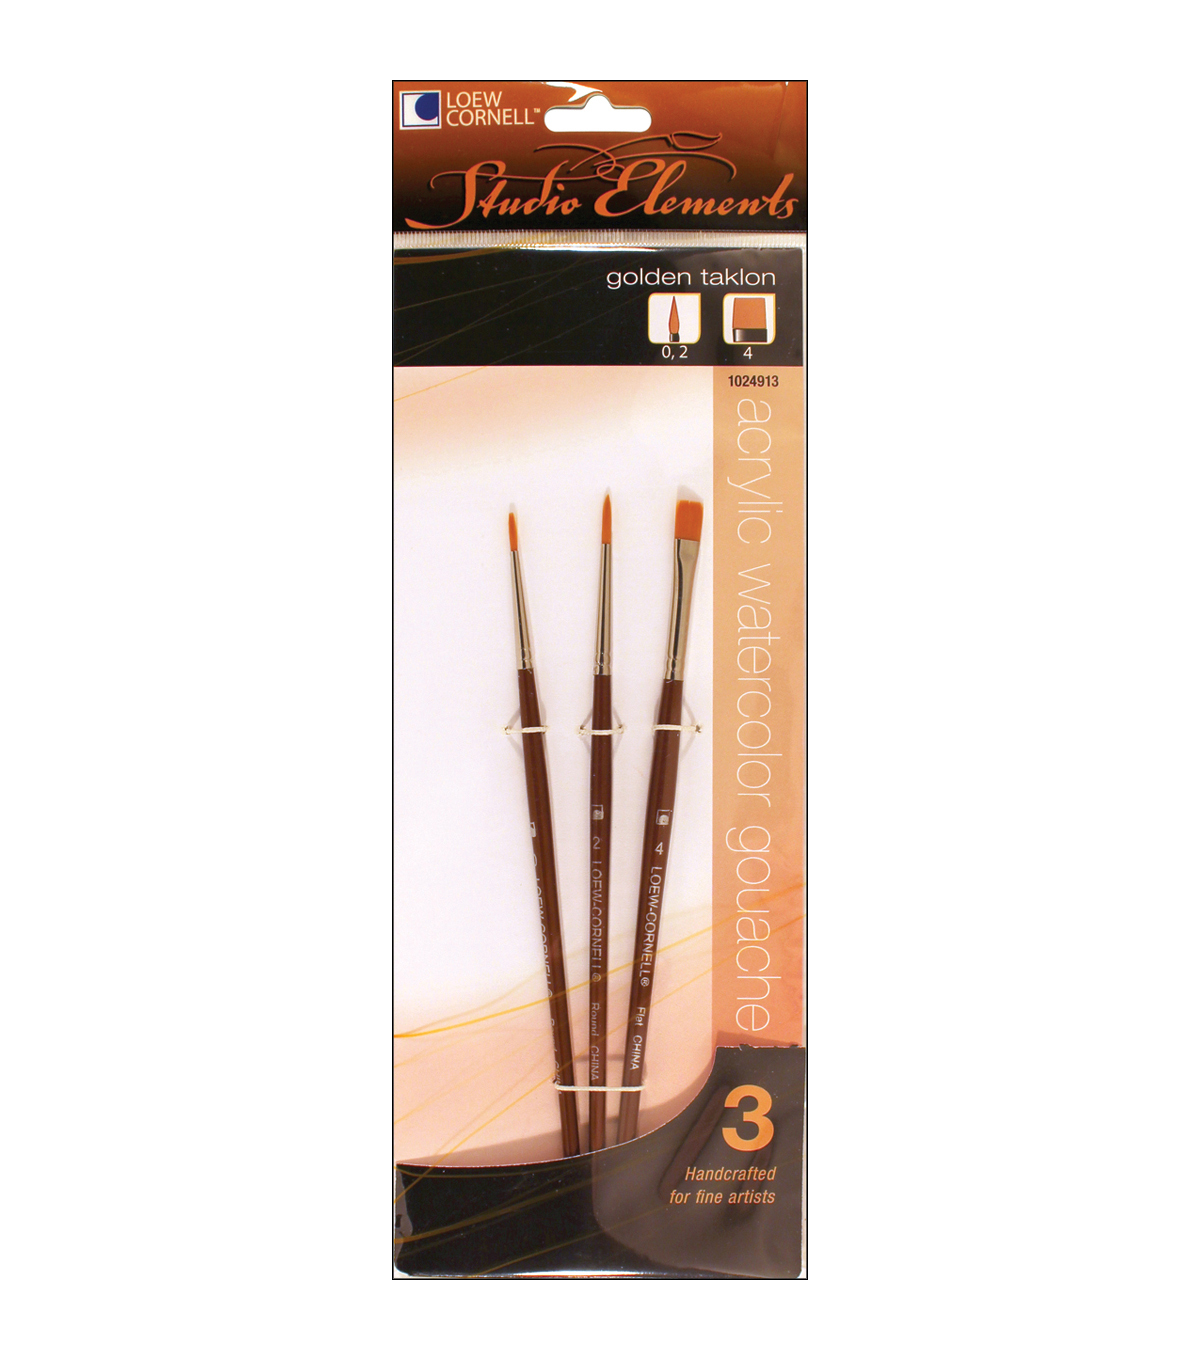 Golden Taklon Rnd Flat Set Of 3